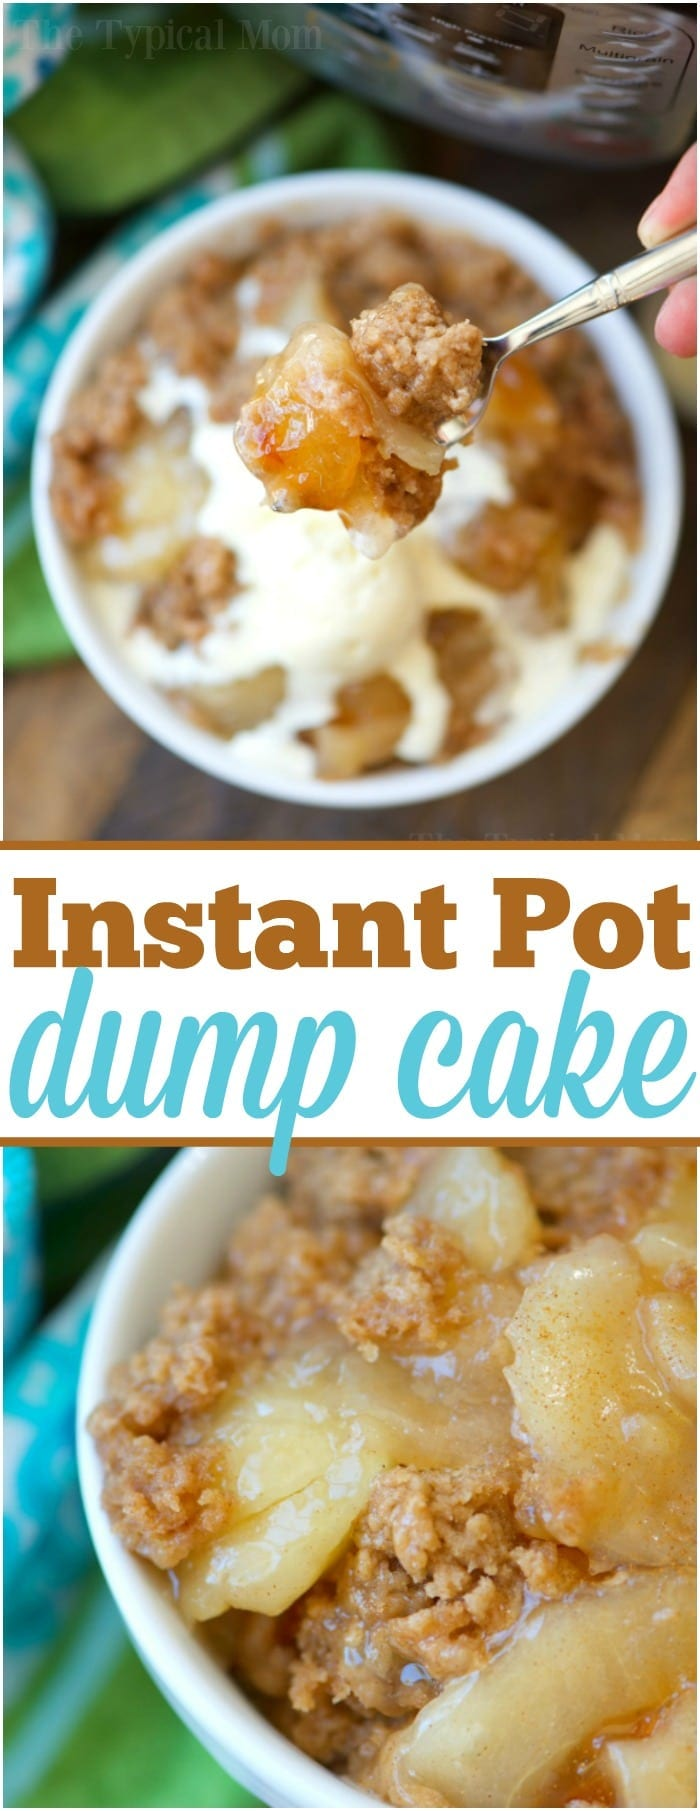 This 3 ingredient easy Instant Pot dump cake is delicious and can be made with any fruit filling! Just dump it in with cake mix and top with ice cream when it's done. The perfect little pressure cooker dessert you're whole family will enjoy. #pressurecooker #instantpot #dessert #dumpcake #cake #apple